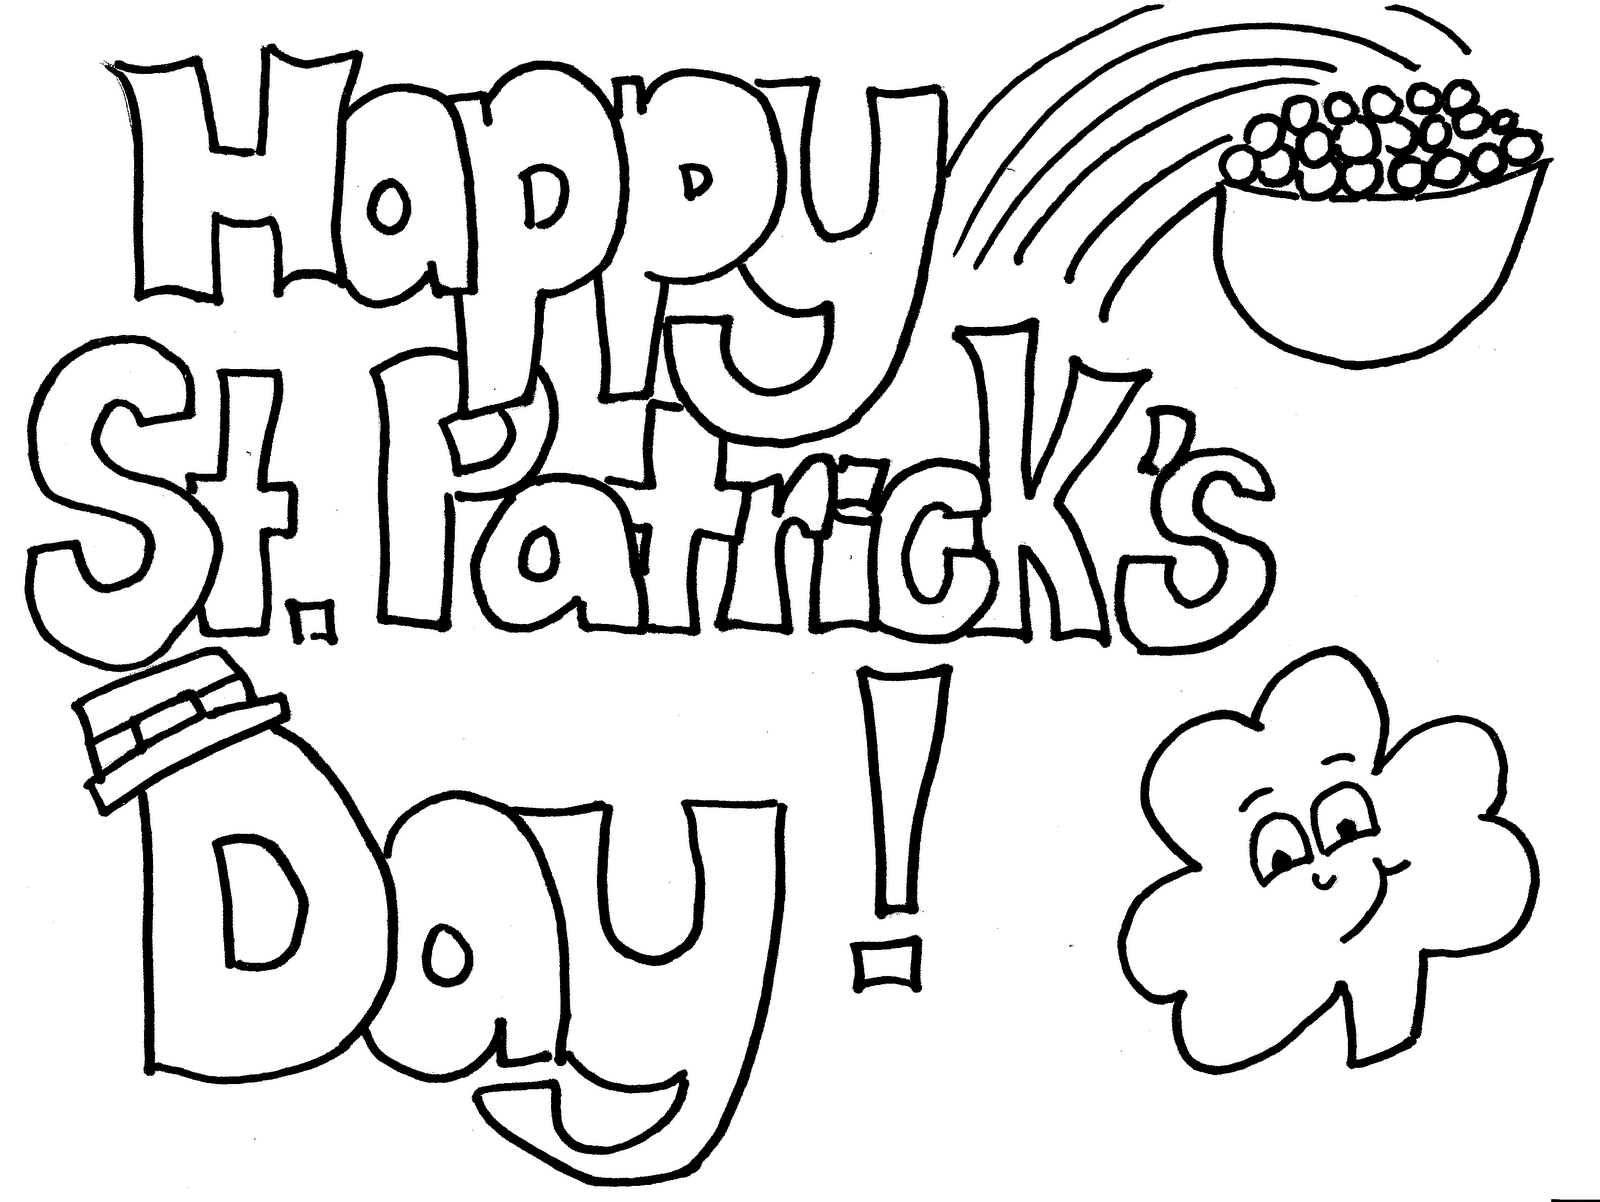 happy st patricks day coloring sheets printable for kids - St Patricks Day Coloring Pages